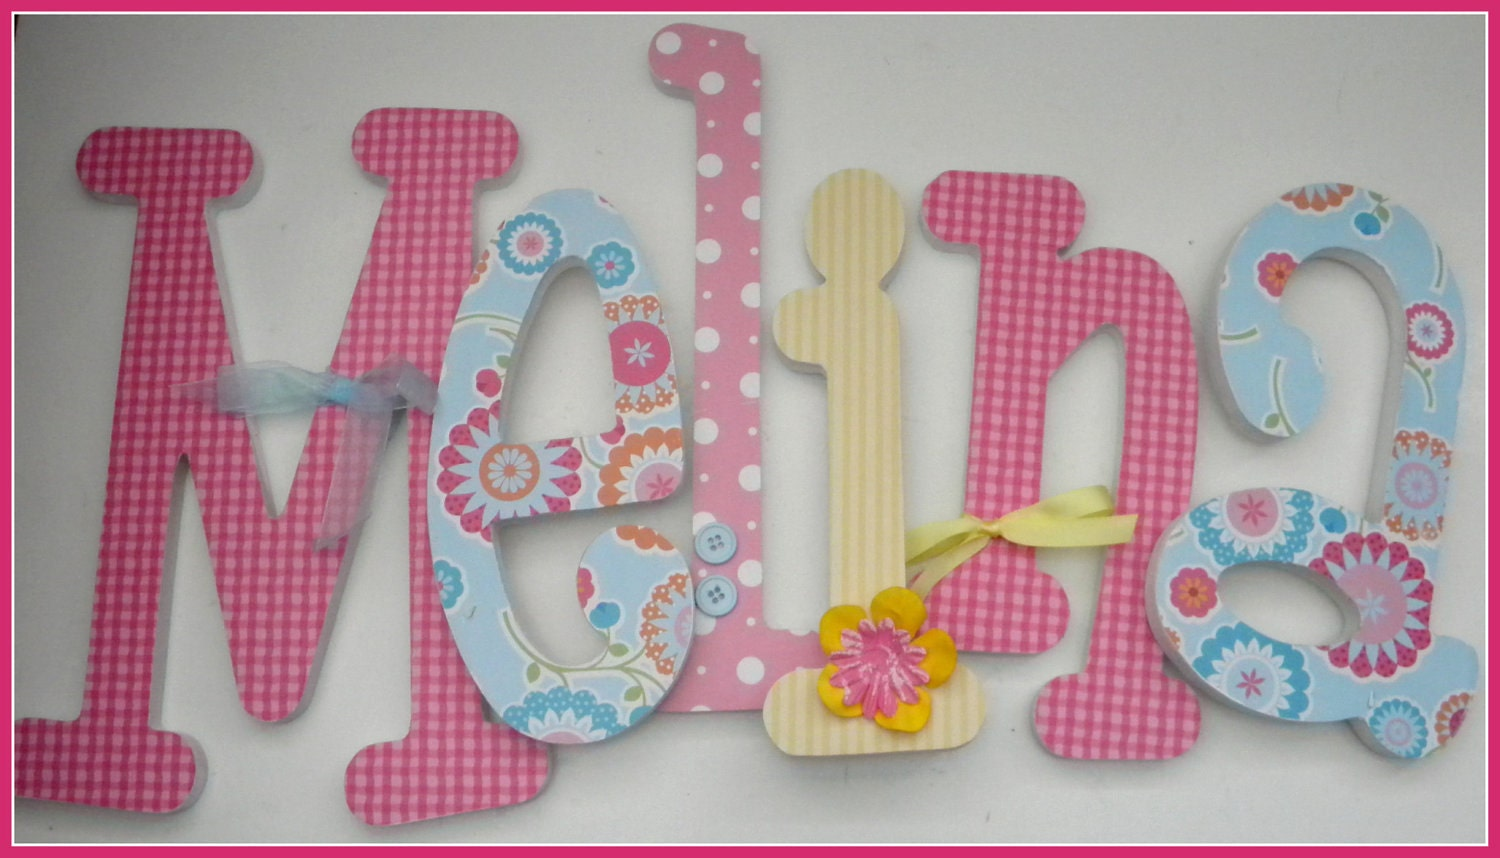 Floral Nursery Decor Wooden Letters Baby Girls FLOWER FUN